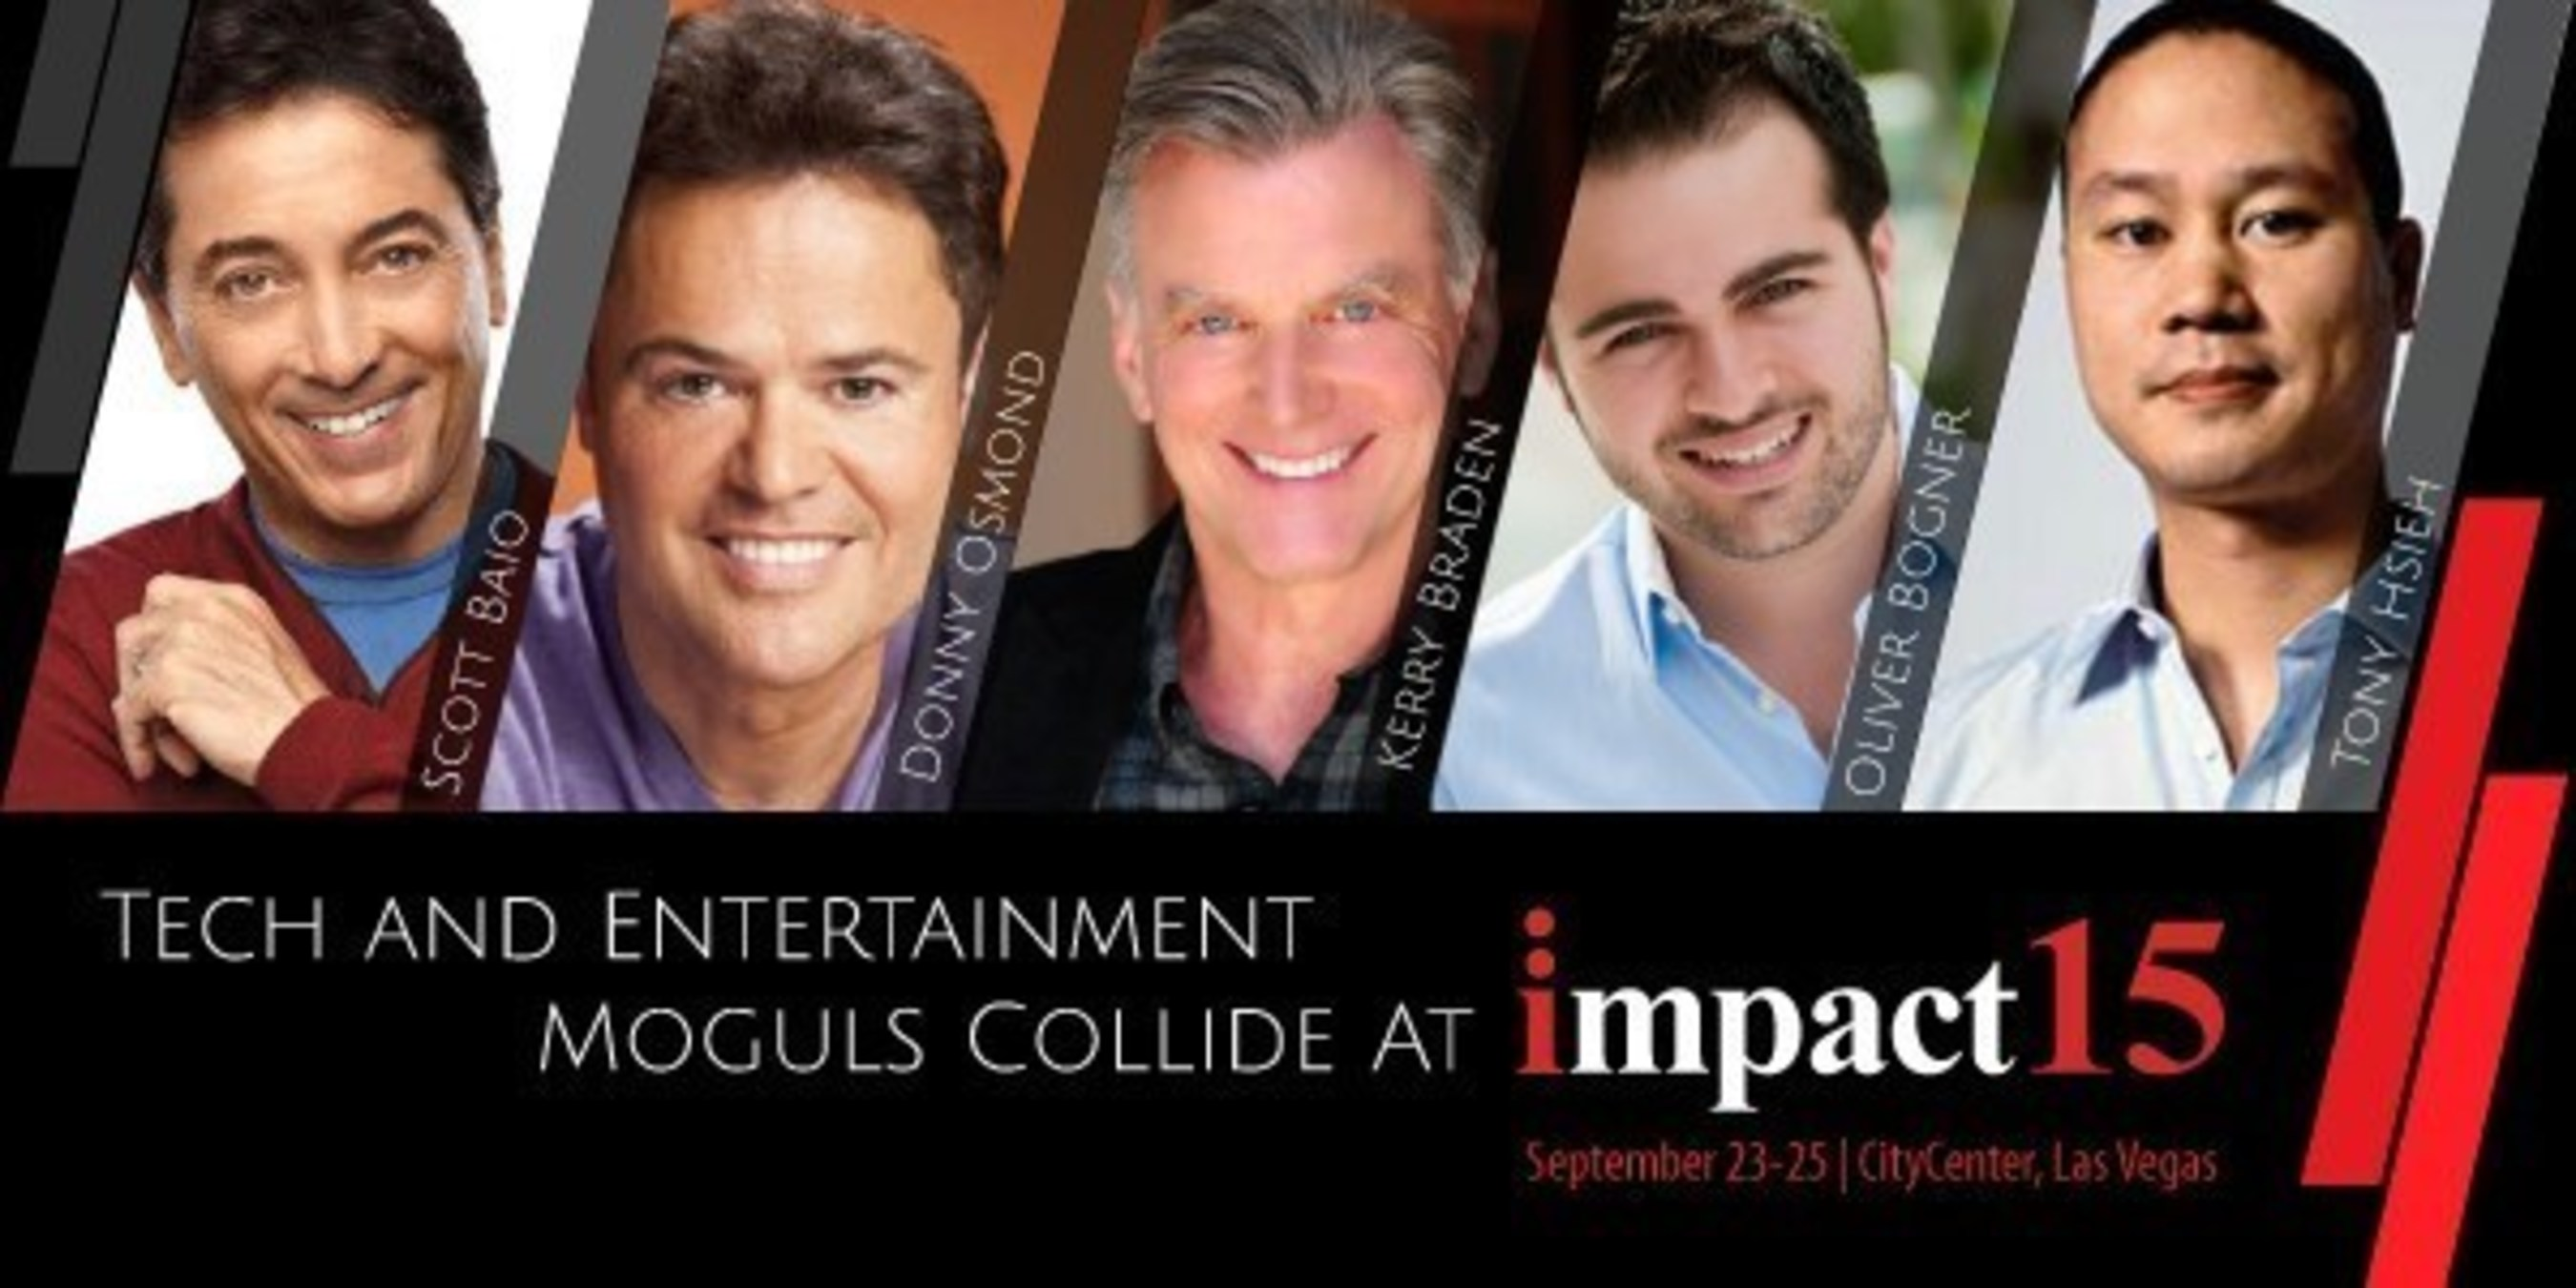 Influential Thought Leaders to Converge on Stage at Internet Marketing Association's IMPACT15 Event in Las Vegas